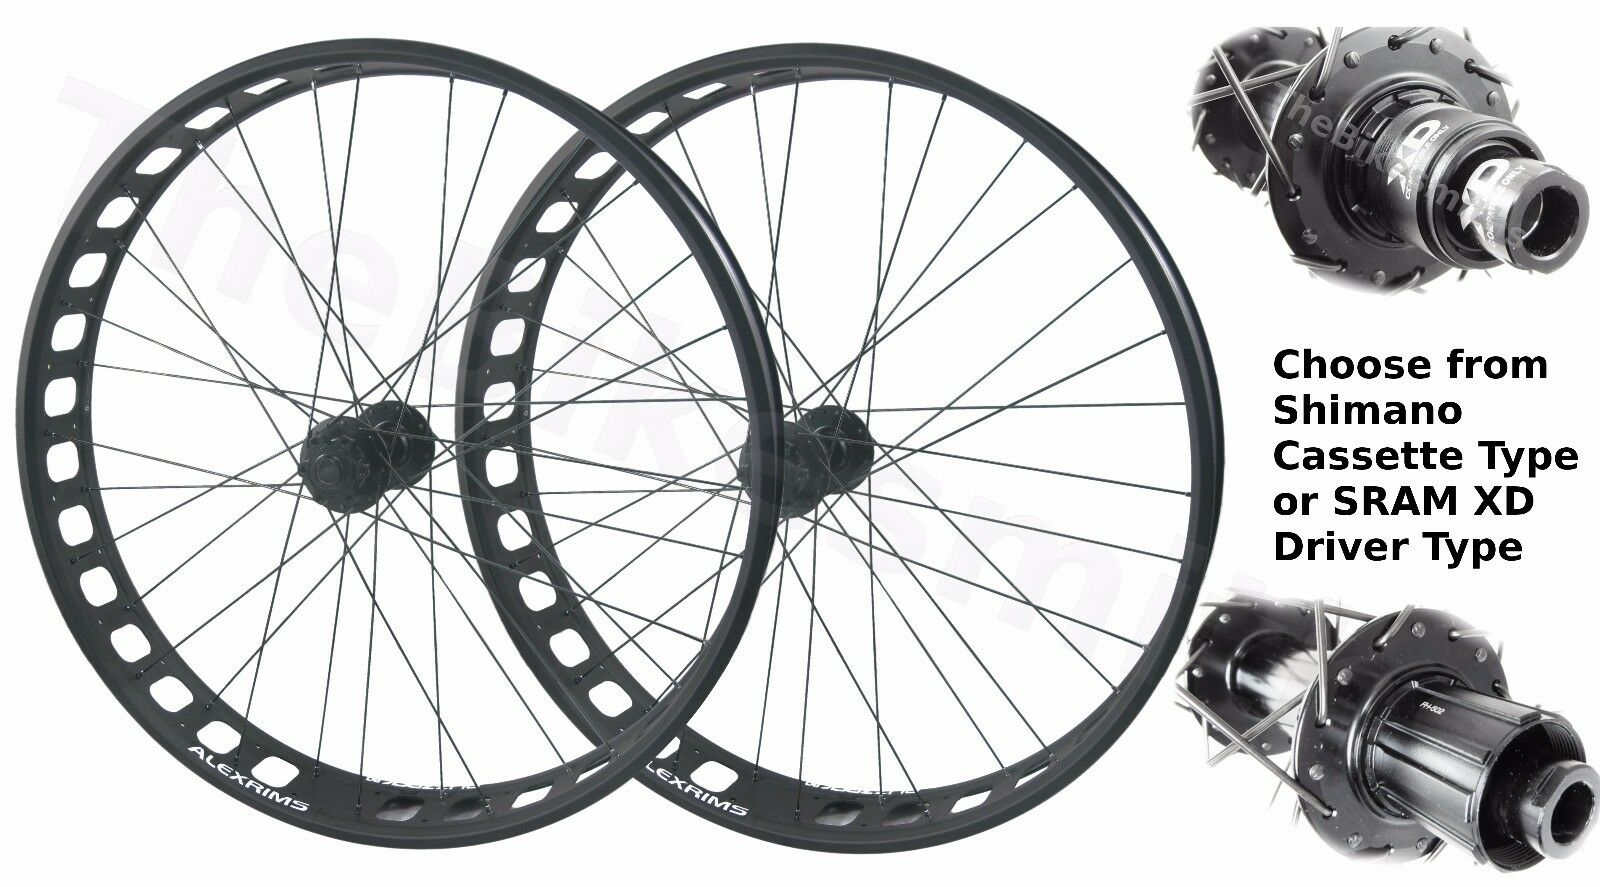 Alex Blizzerk 90 Tubeless Thru-Axle 15x150 Front & 12x197 Rear Fat Bike Wheelset